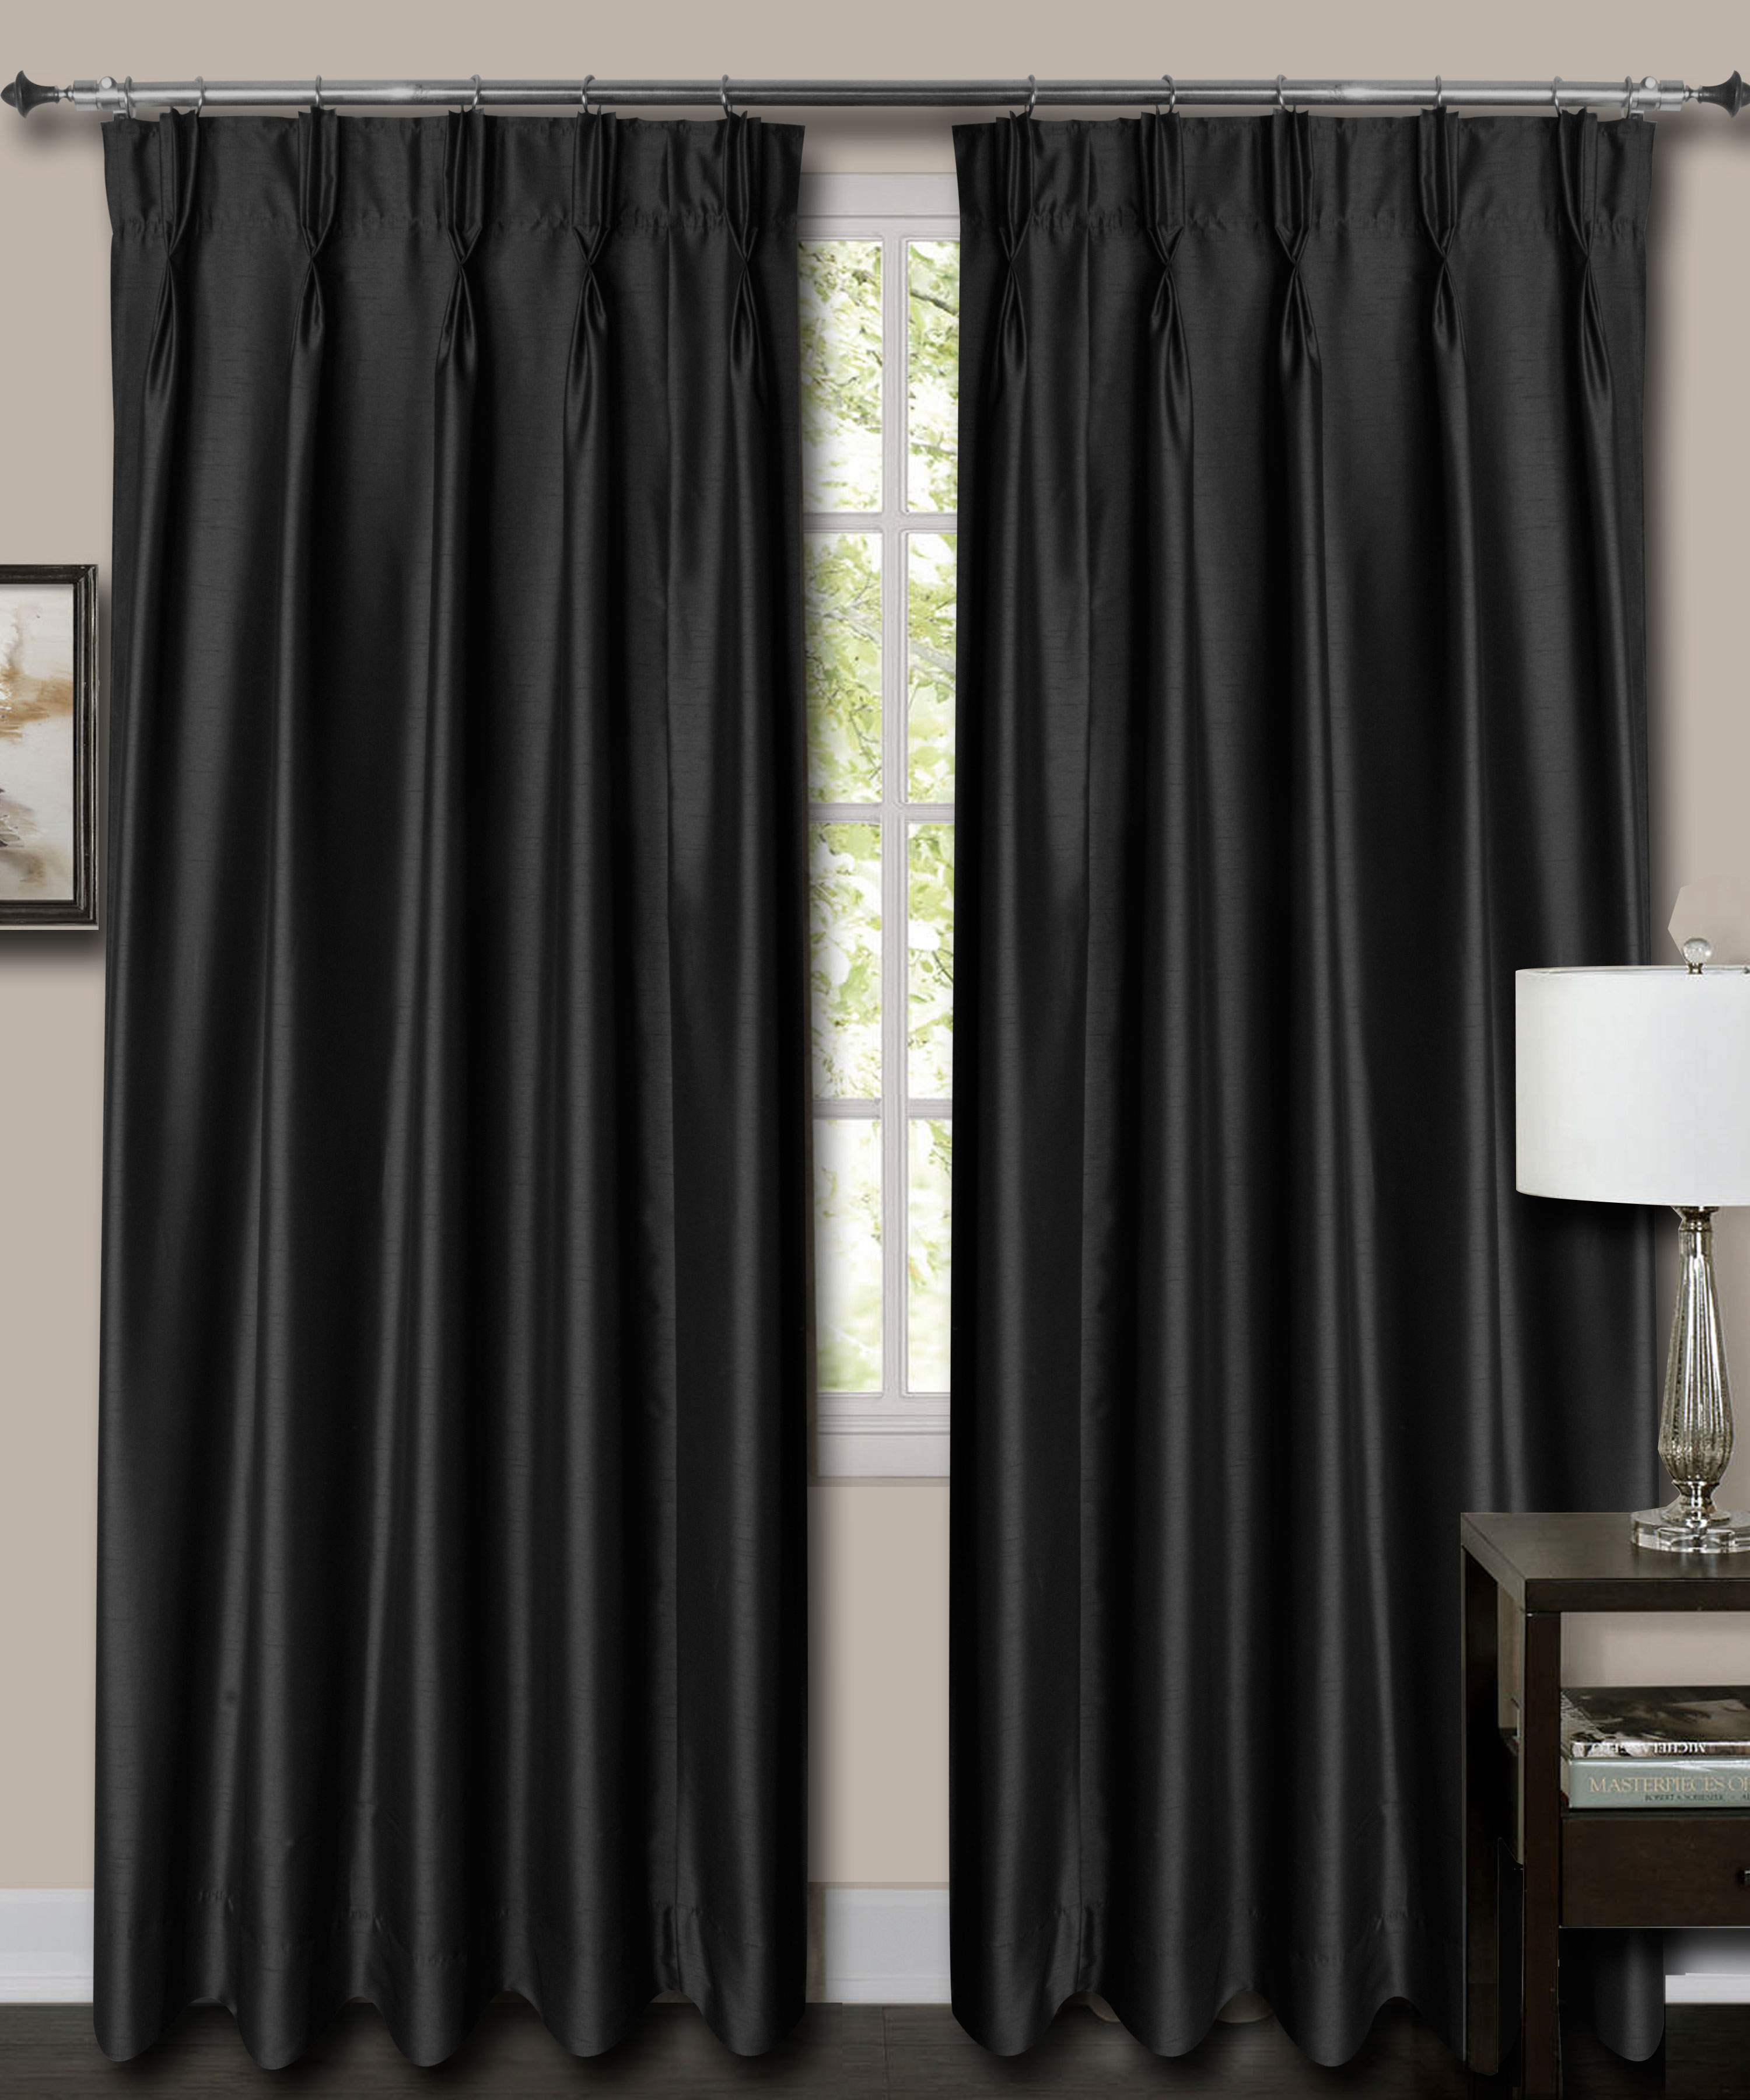 "French Pleat Top Black Faux Silk Dupioni Curtains. (52"" Wide, 6 Feet Long, Without Lining)"